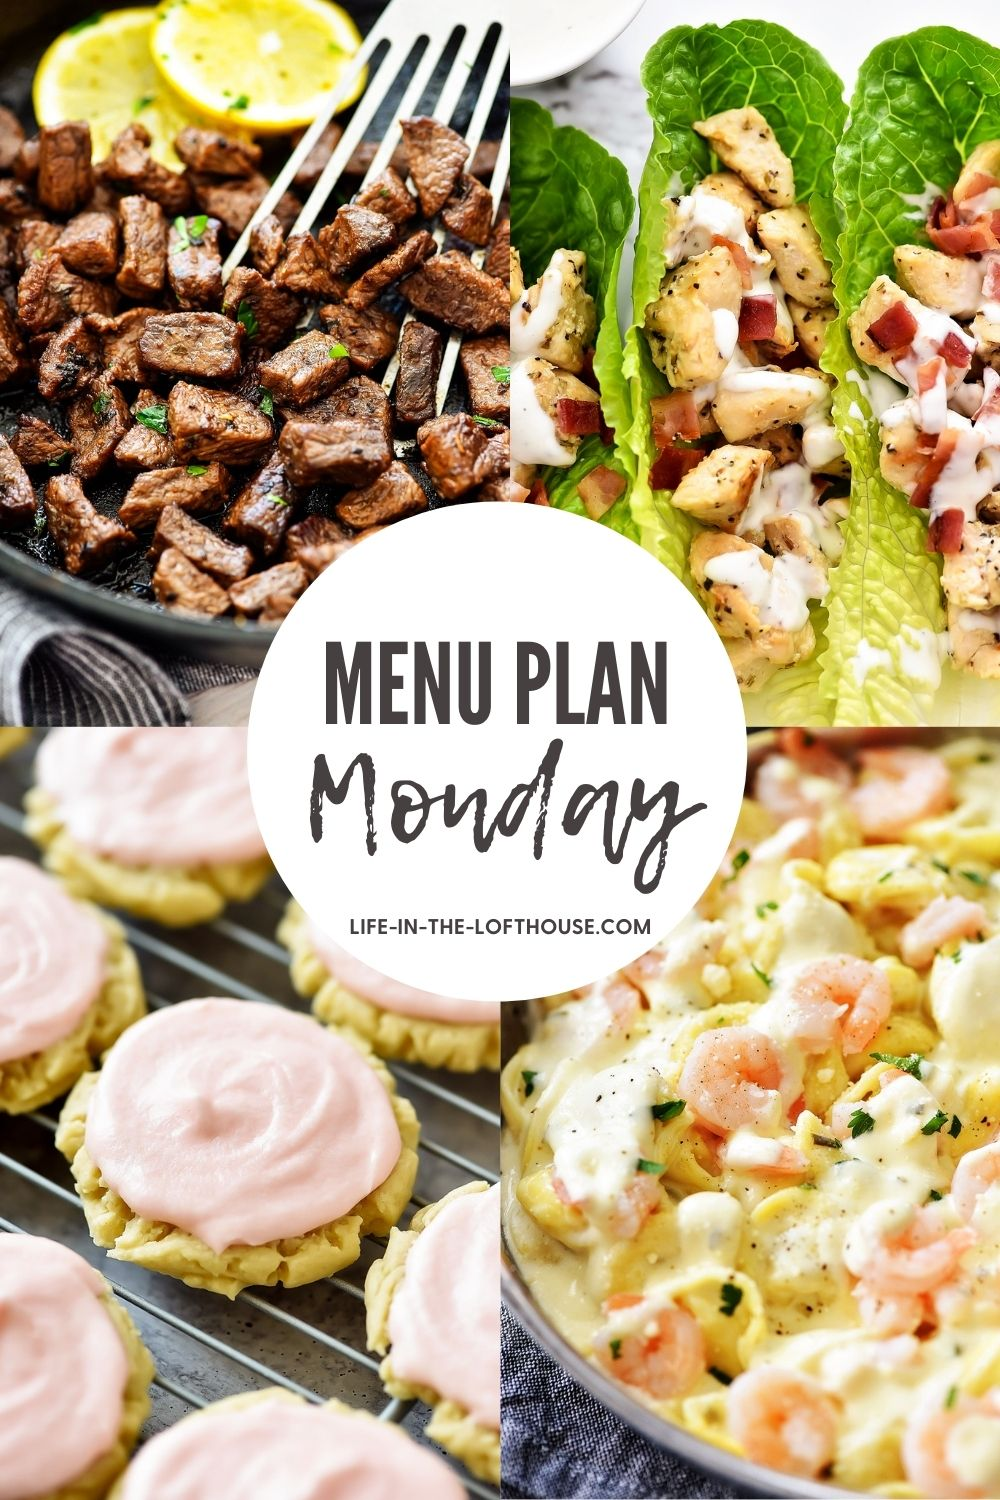 Menu Plan Monday is an easy guide to help you decide what to make for dinner. Each menu has six delicious dinner ideas and one dessert!